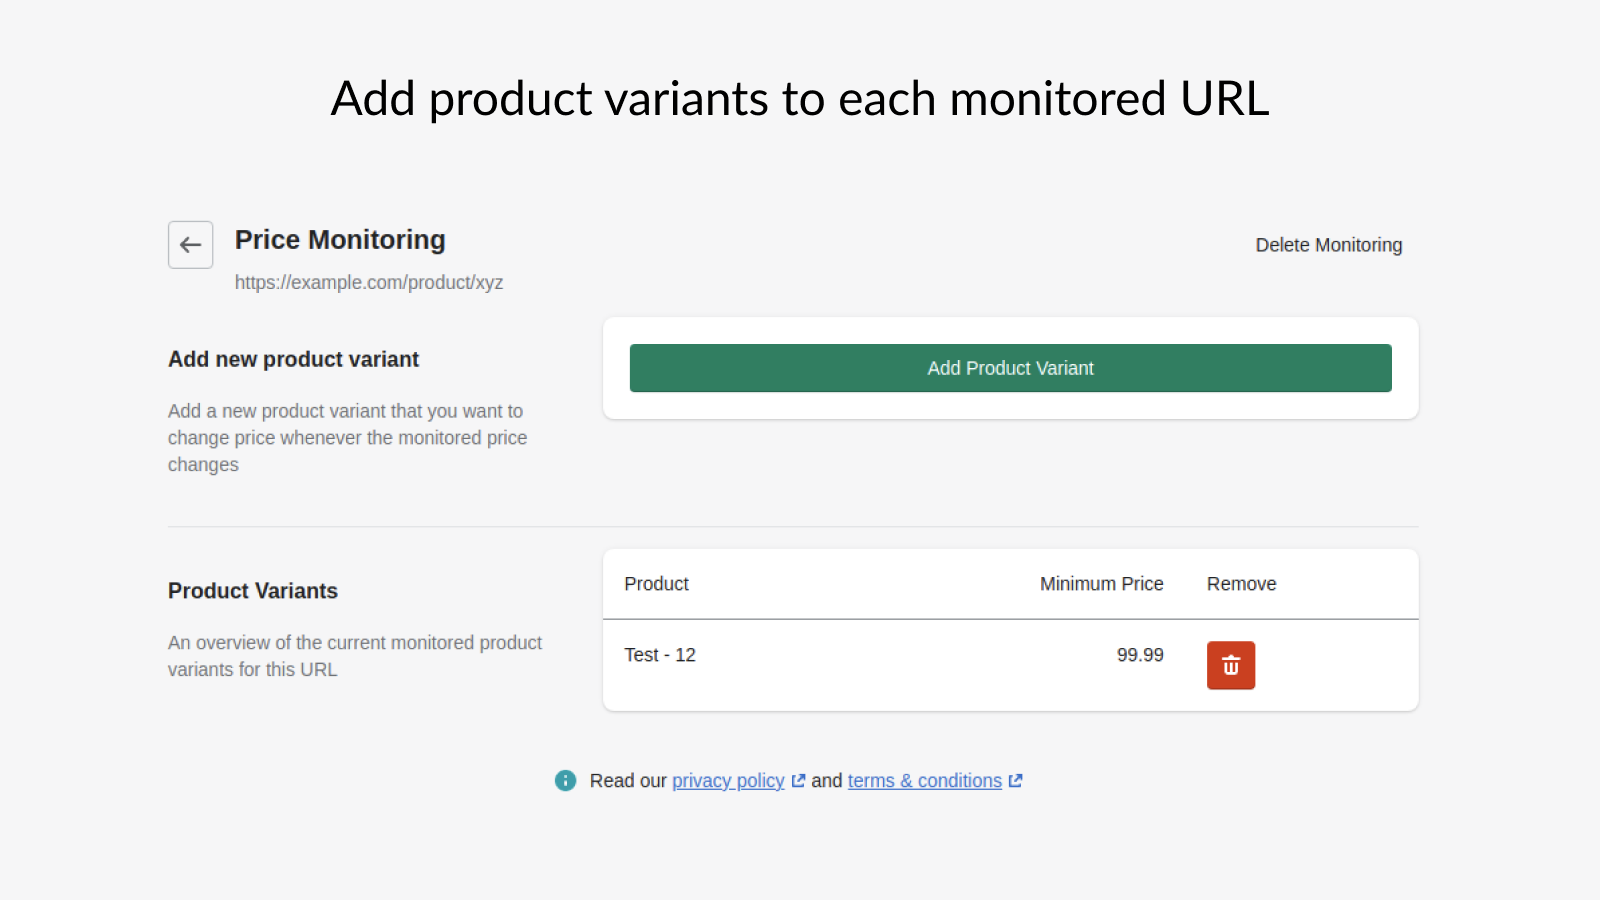 View all products impacted when monitored price changes